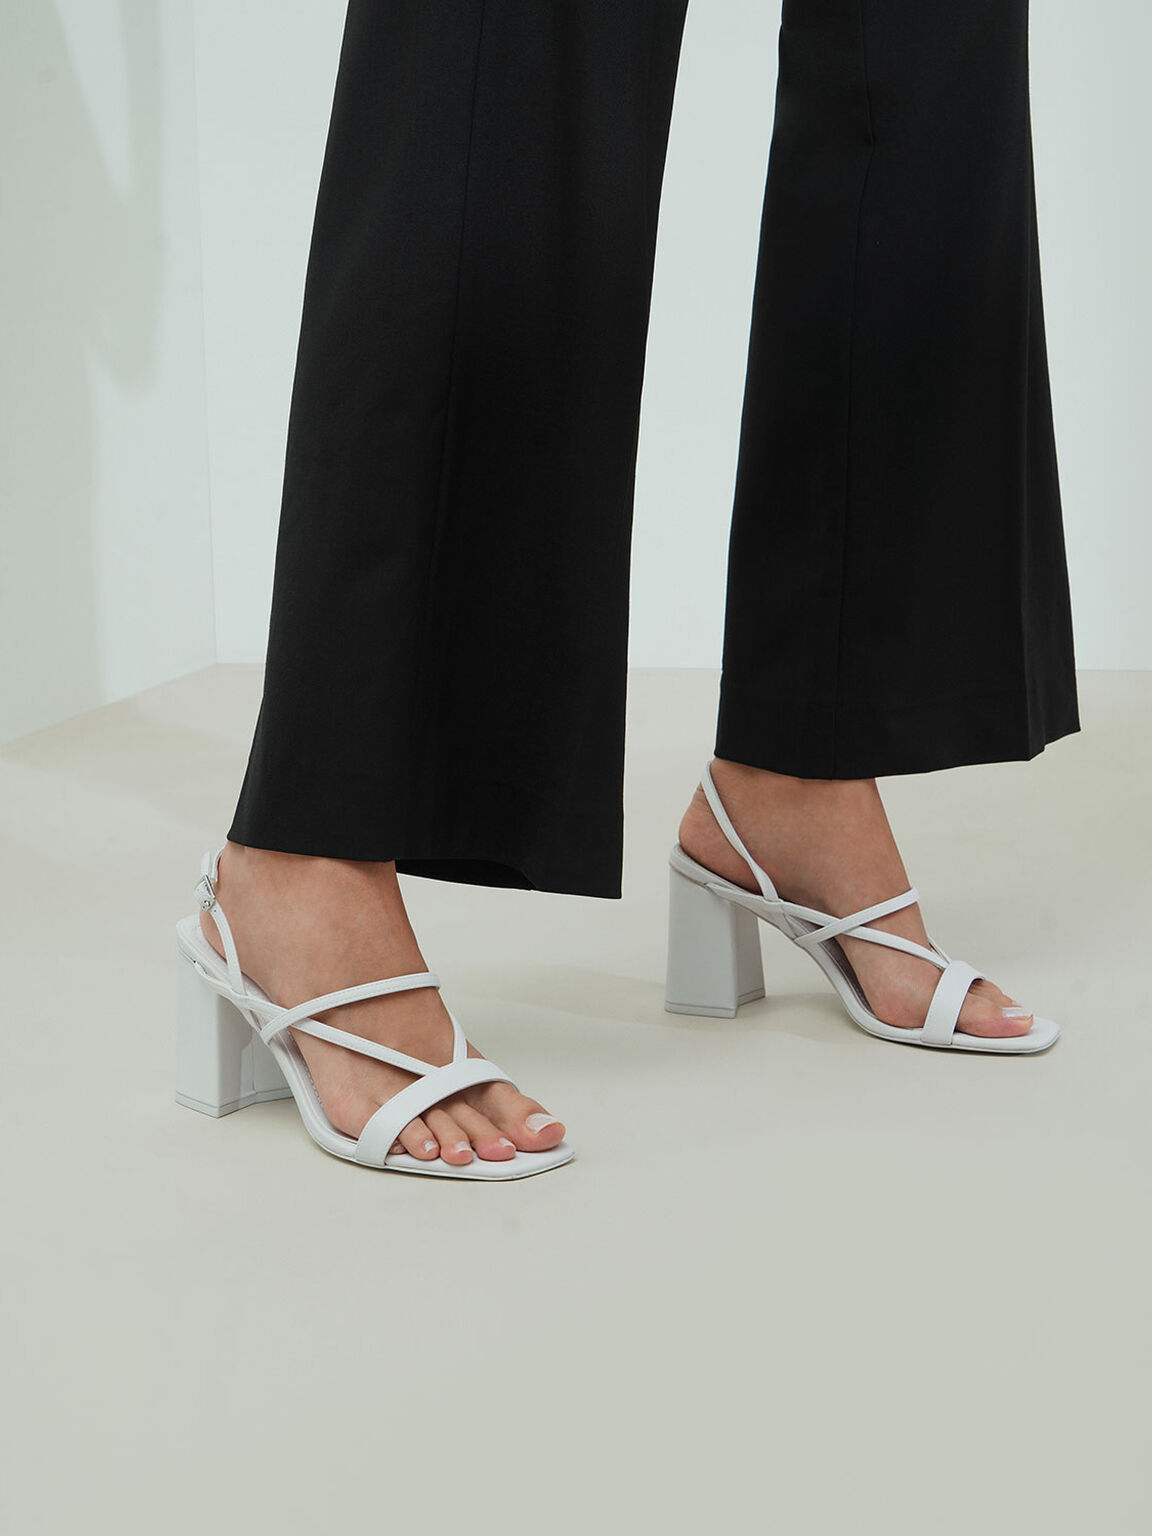 Strappy Chunky Heel Sandals, White, hi-res